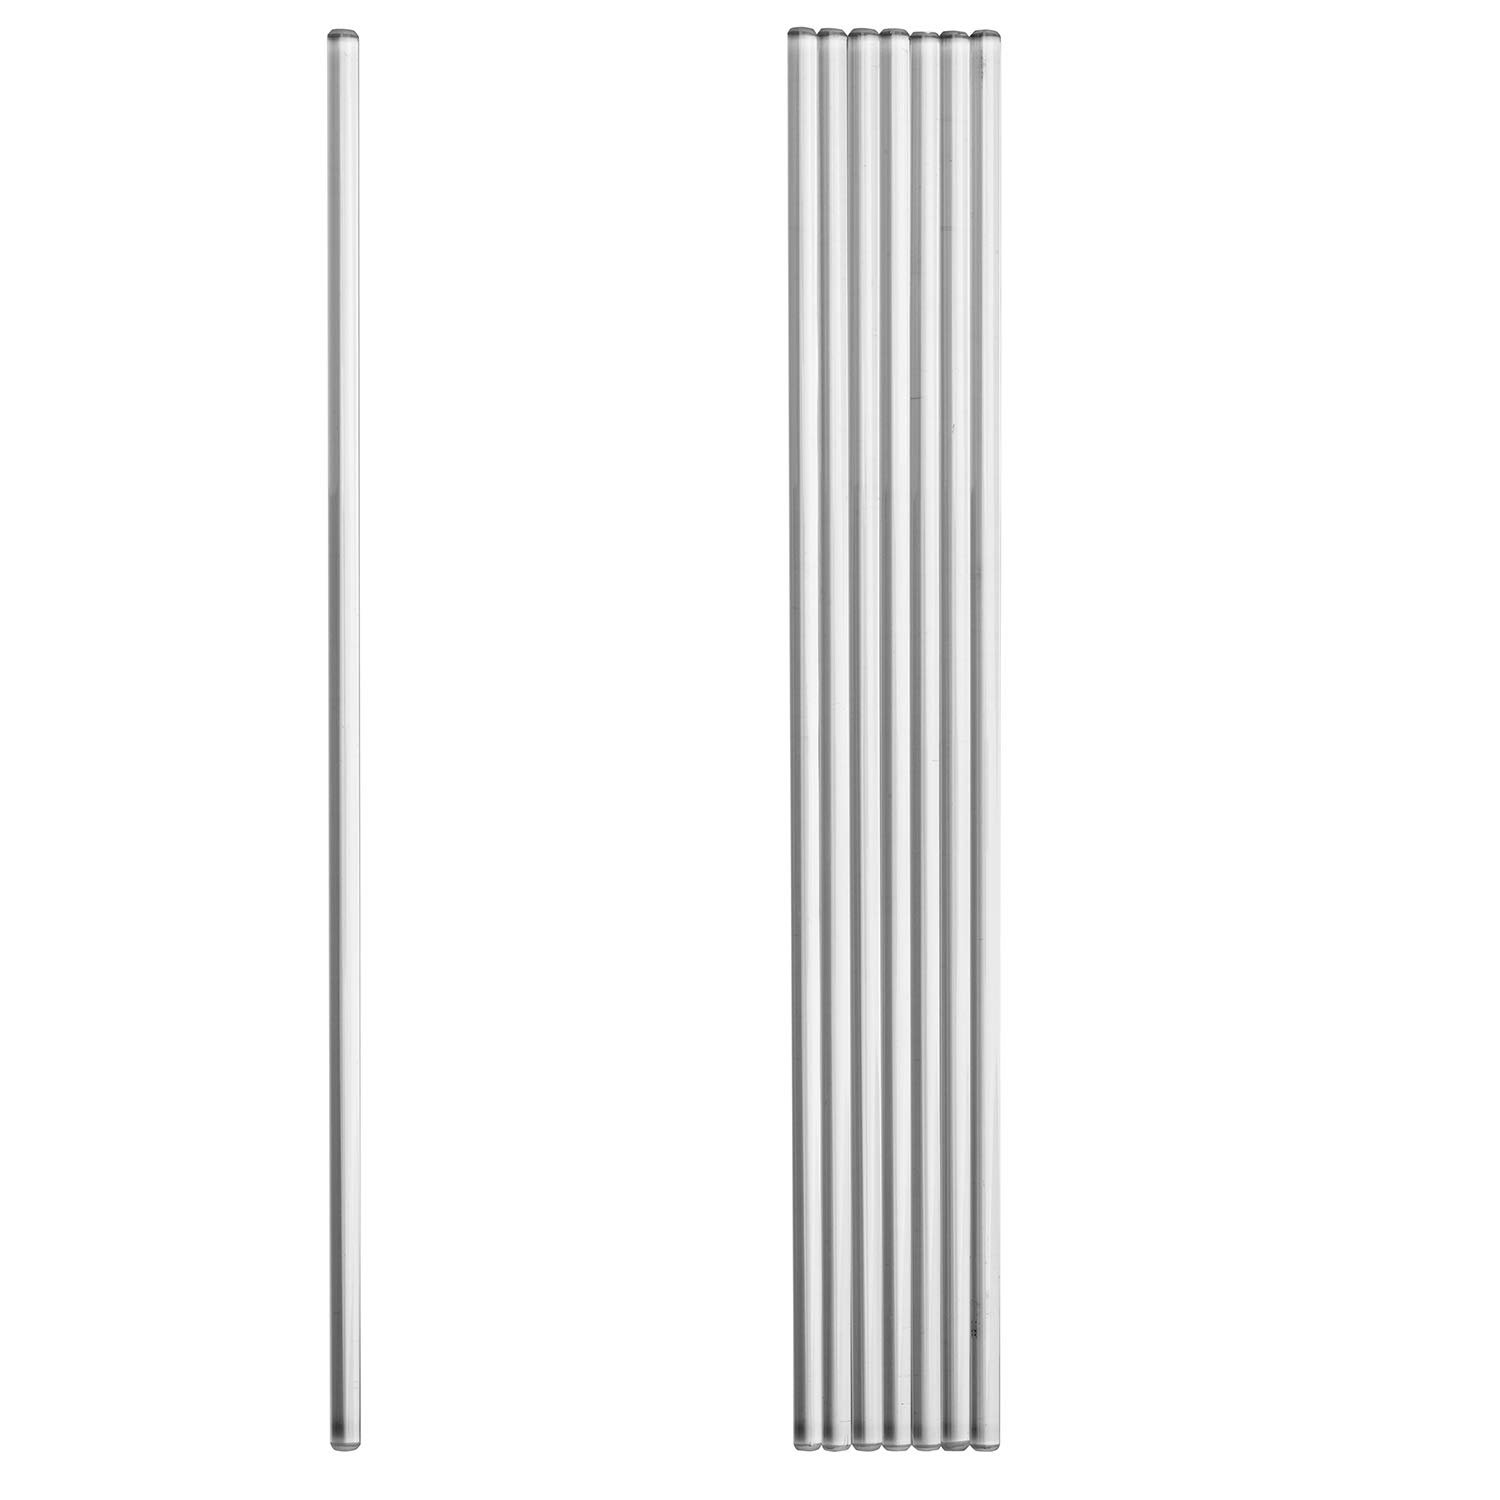 Zyaner Glass Rod 300 mm (12 in × 0.23 in) Glass Stirring Rod Pack :8 pcs of stir Sticks